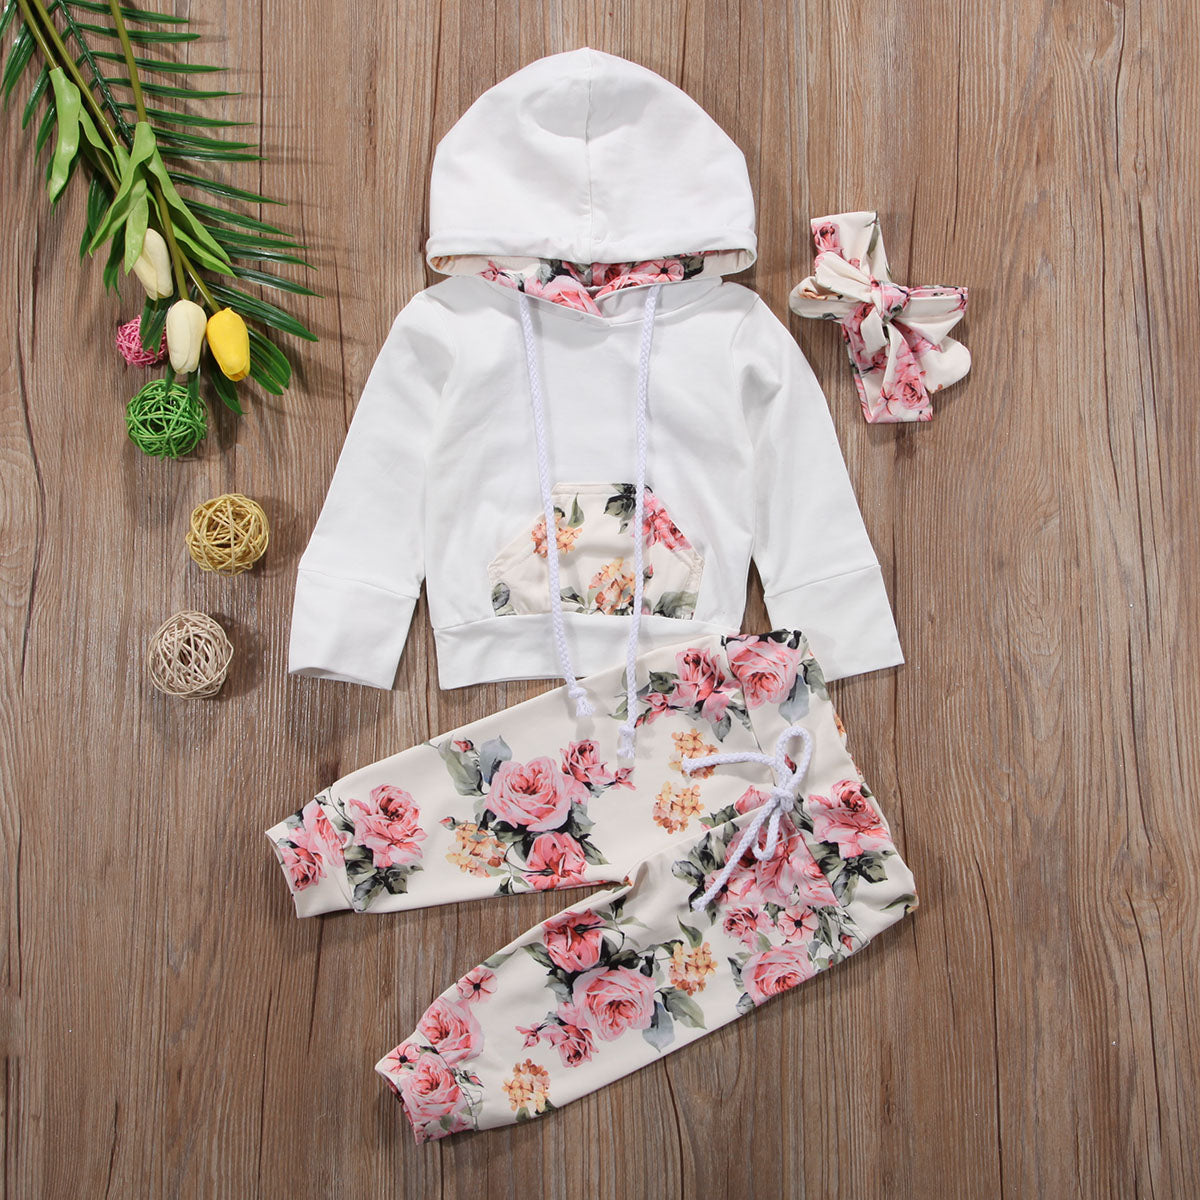 Floral Baby Girl Winter Outfit Set